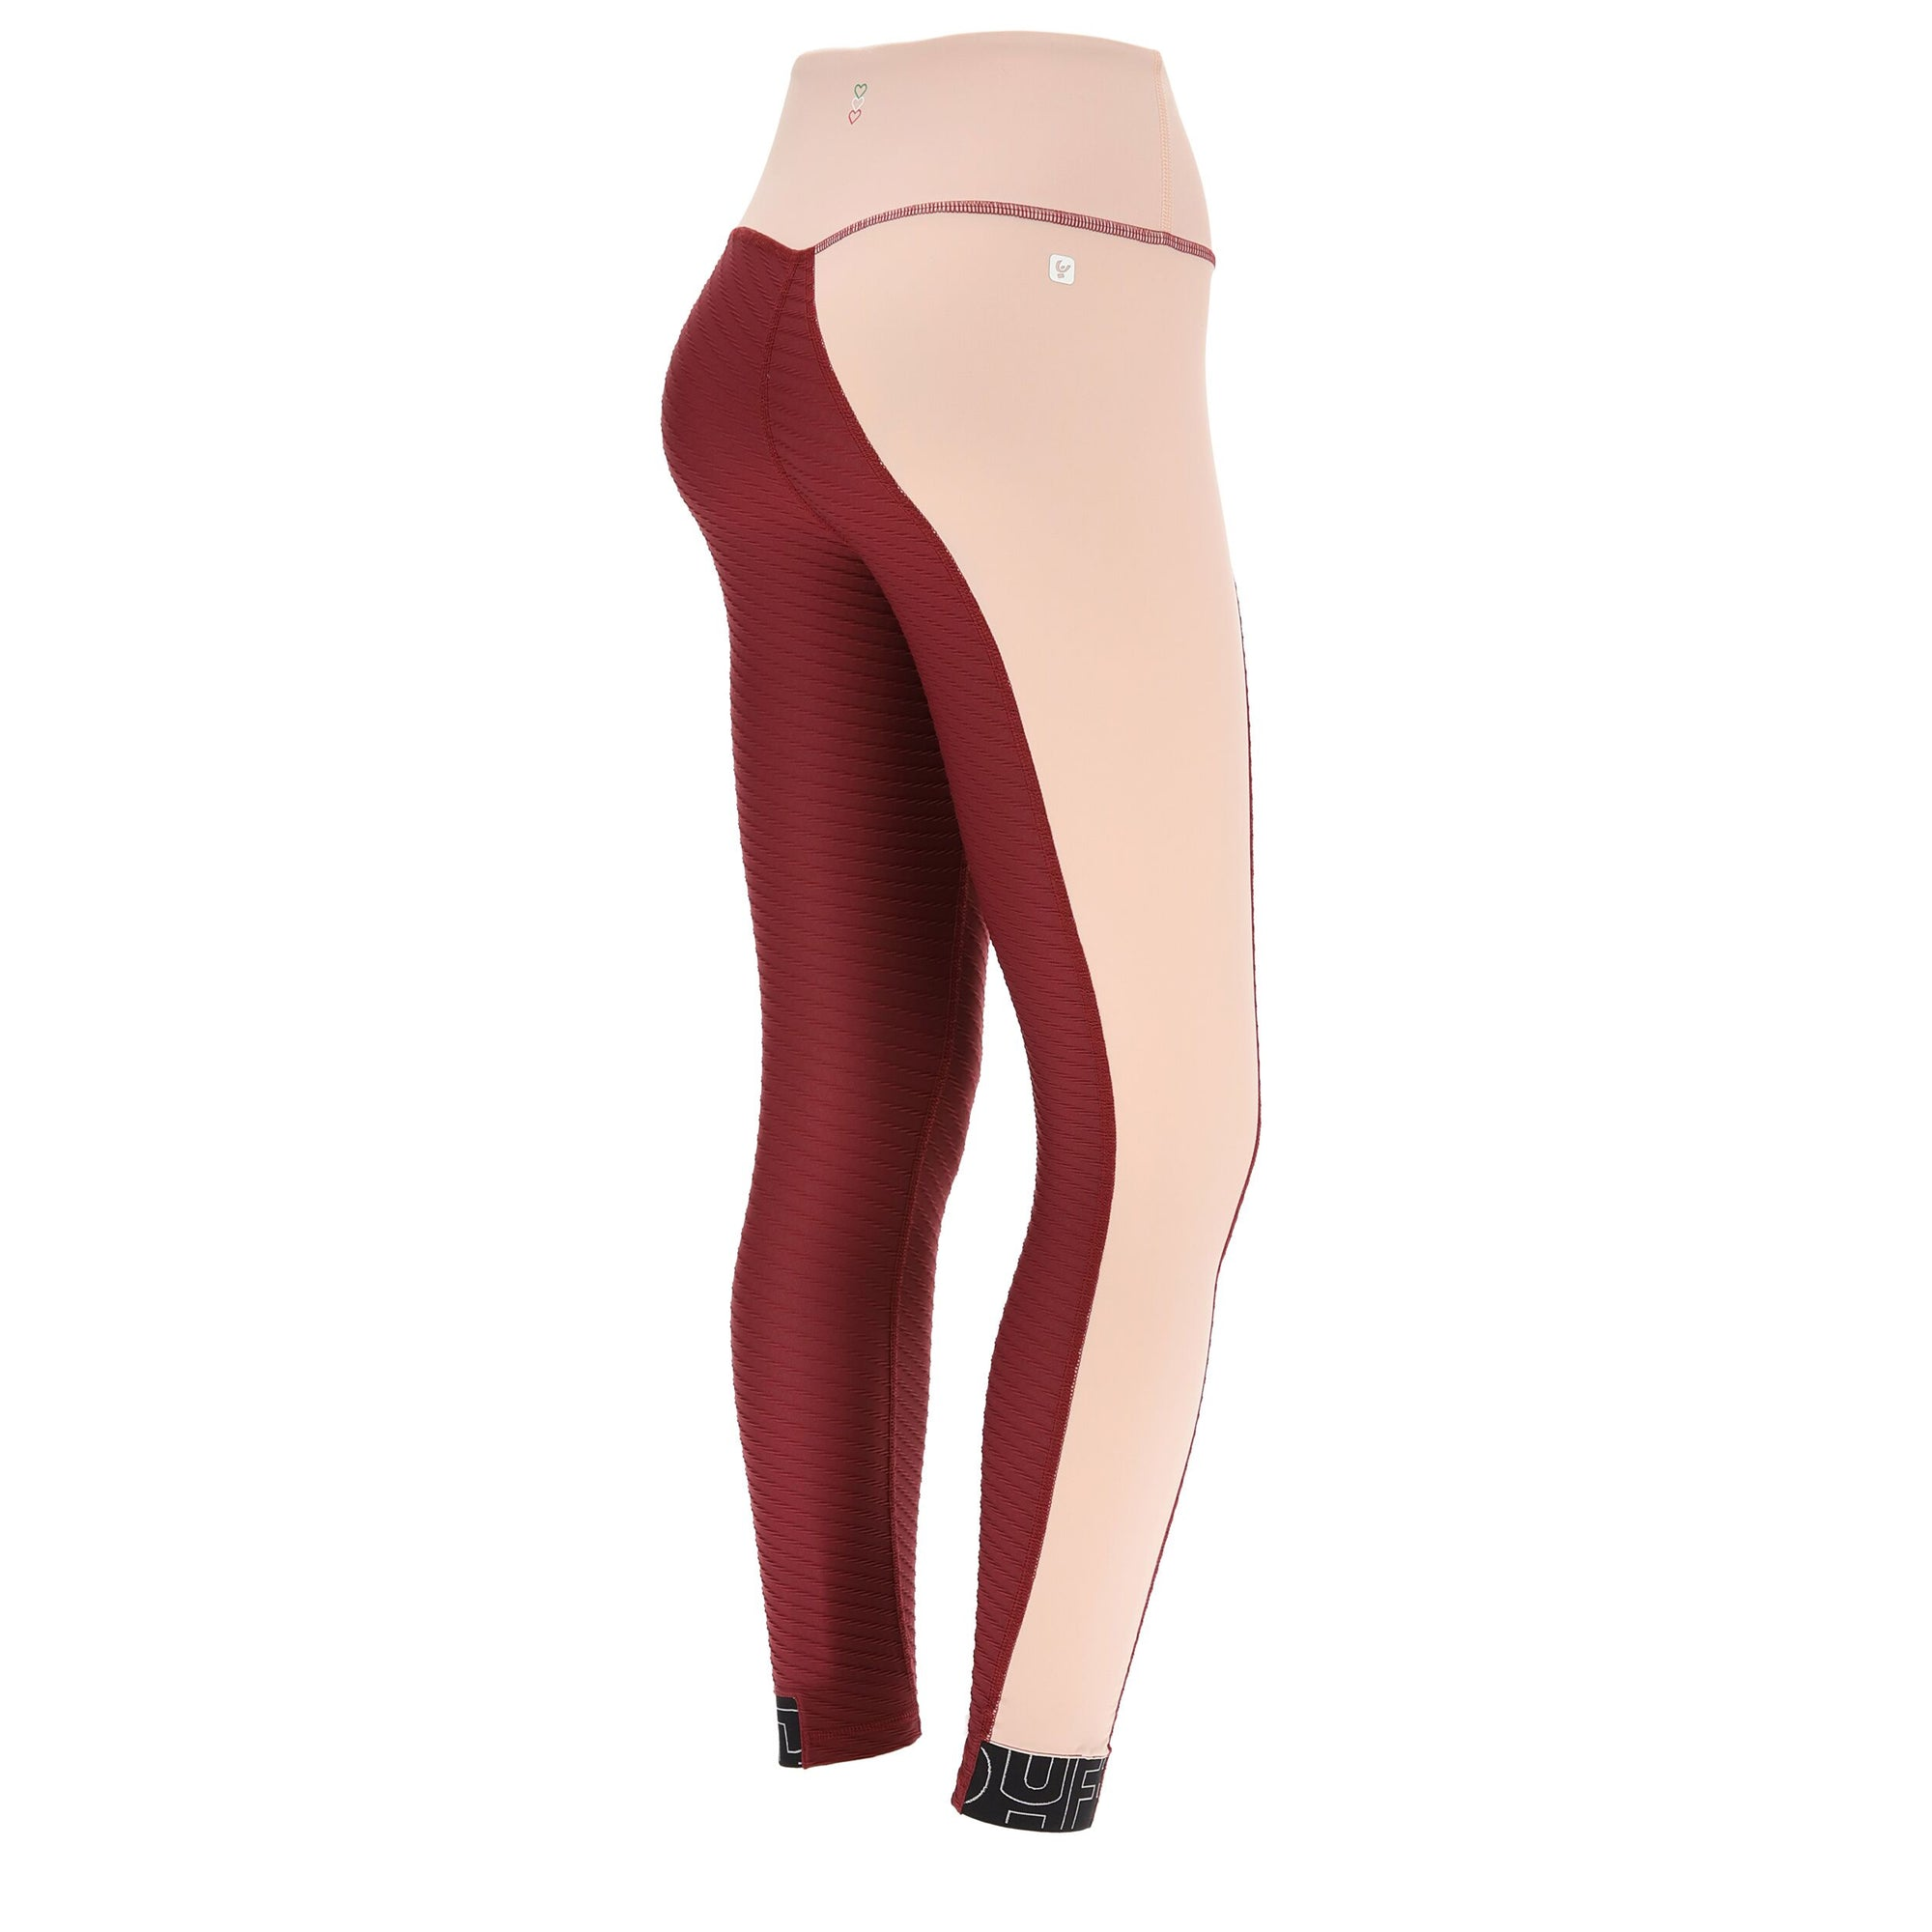 Superfit Sport - High Rise Full Length - Pink/Red